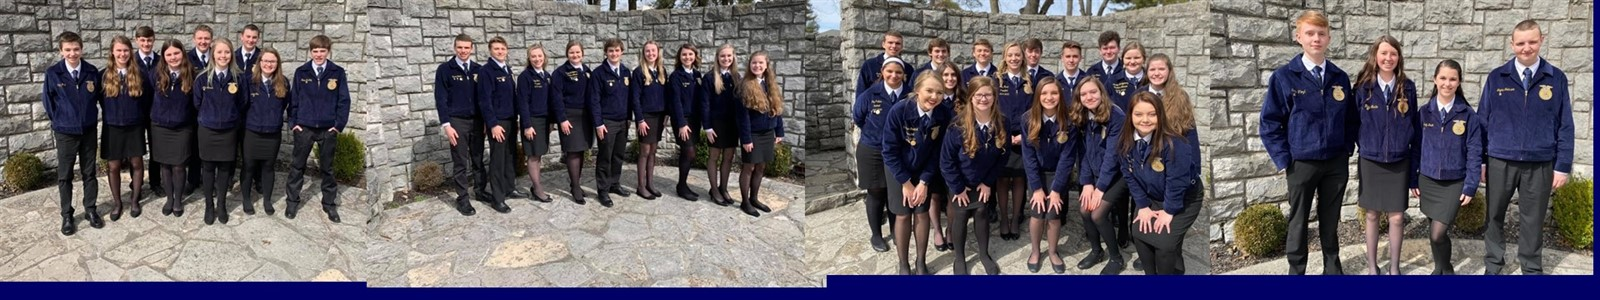 Congratulations Spencer County FFA